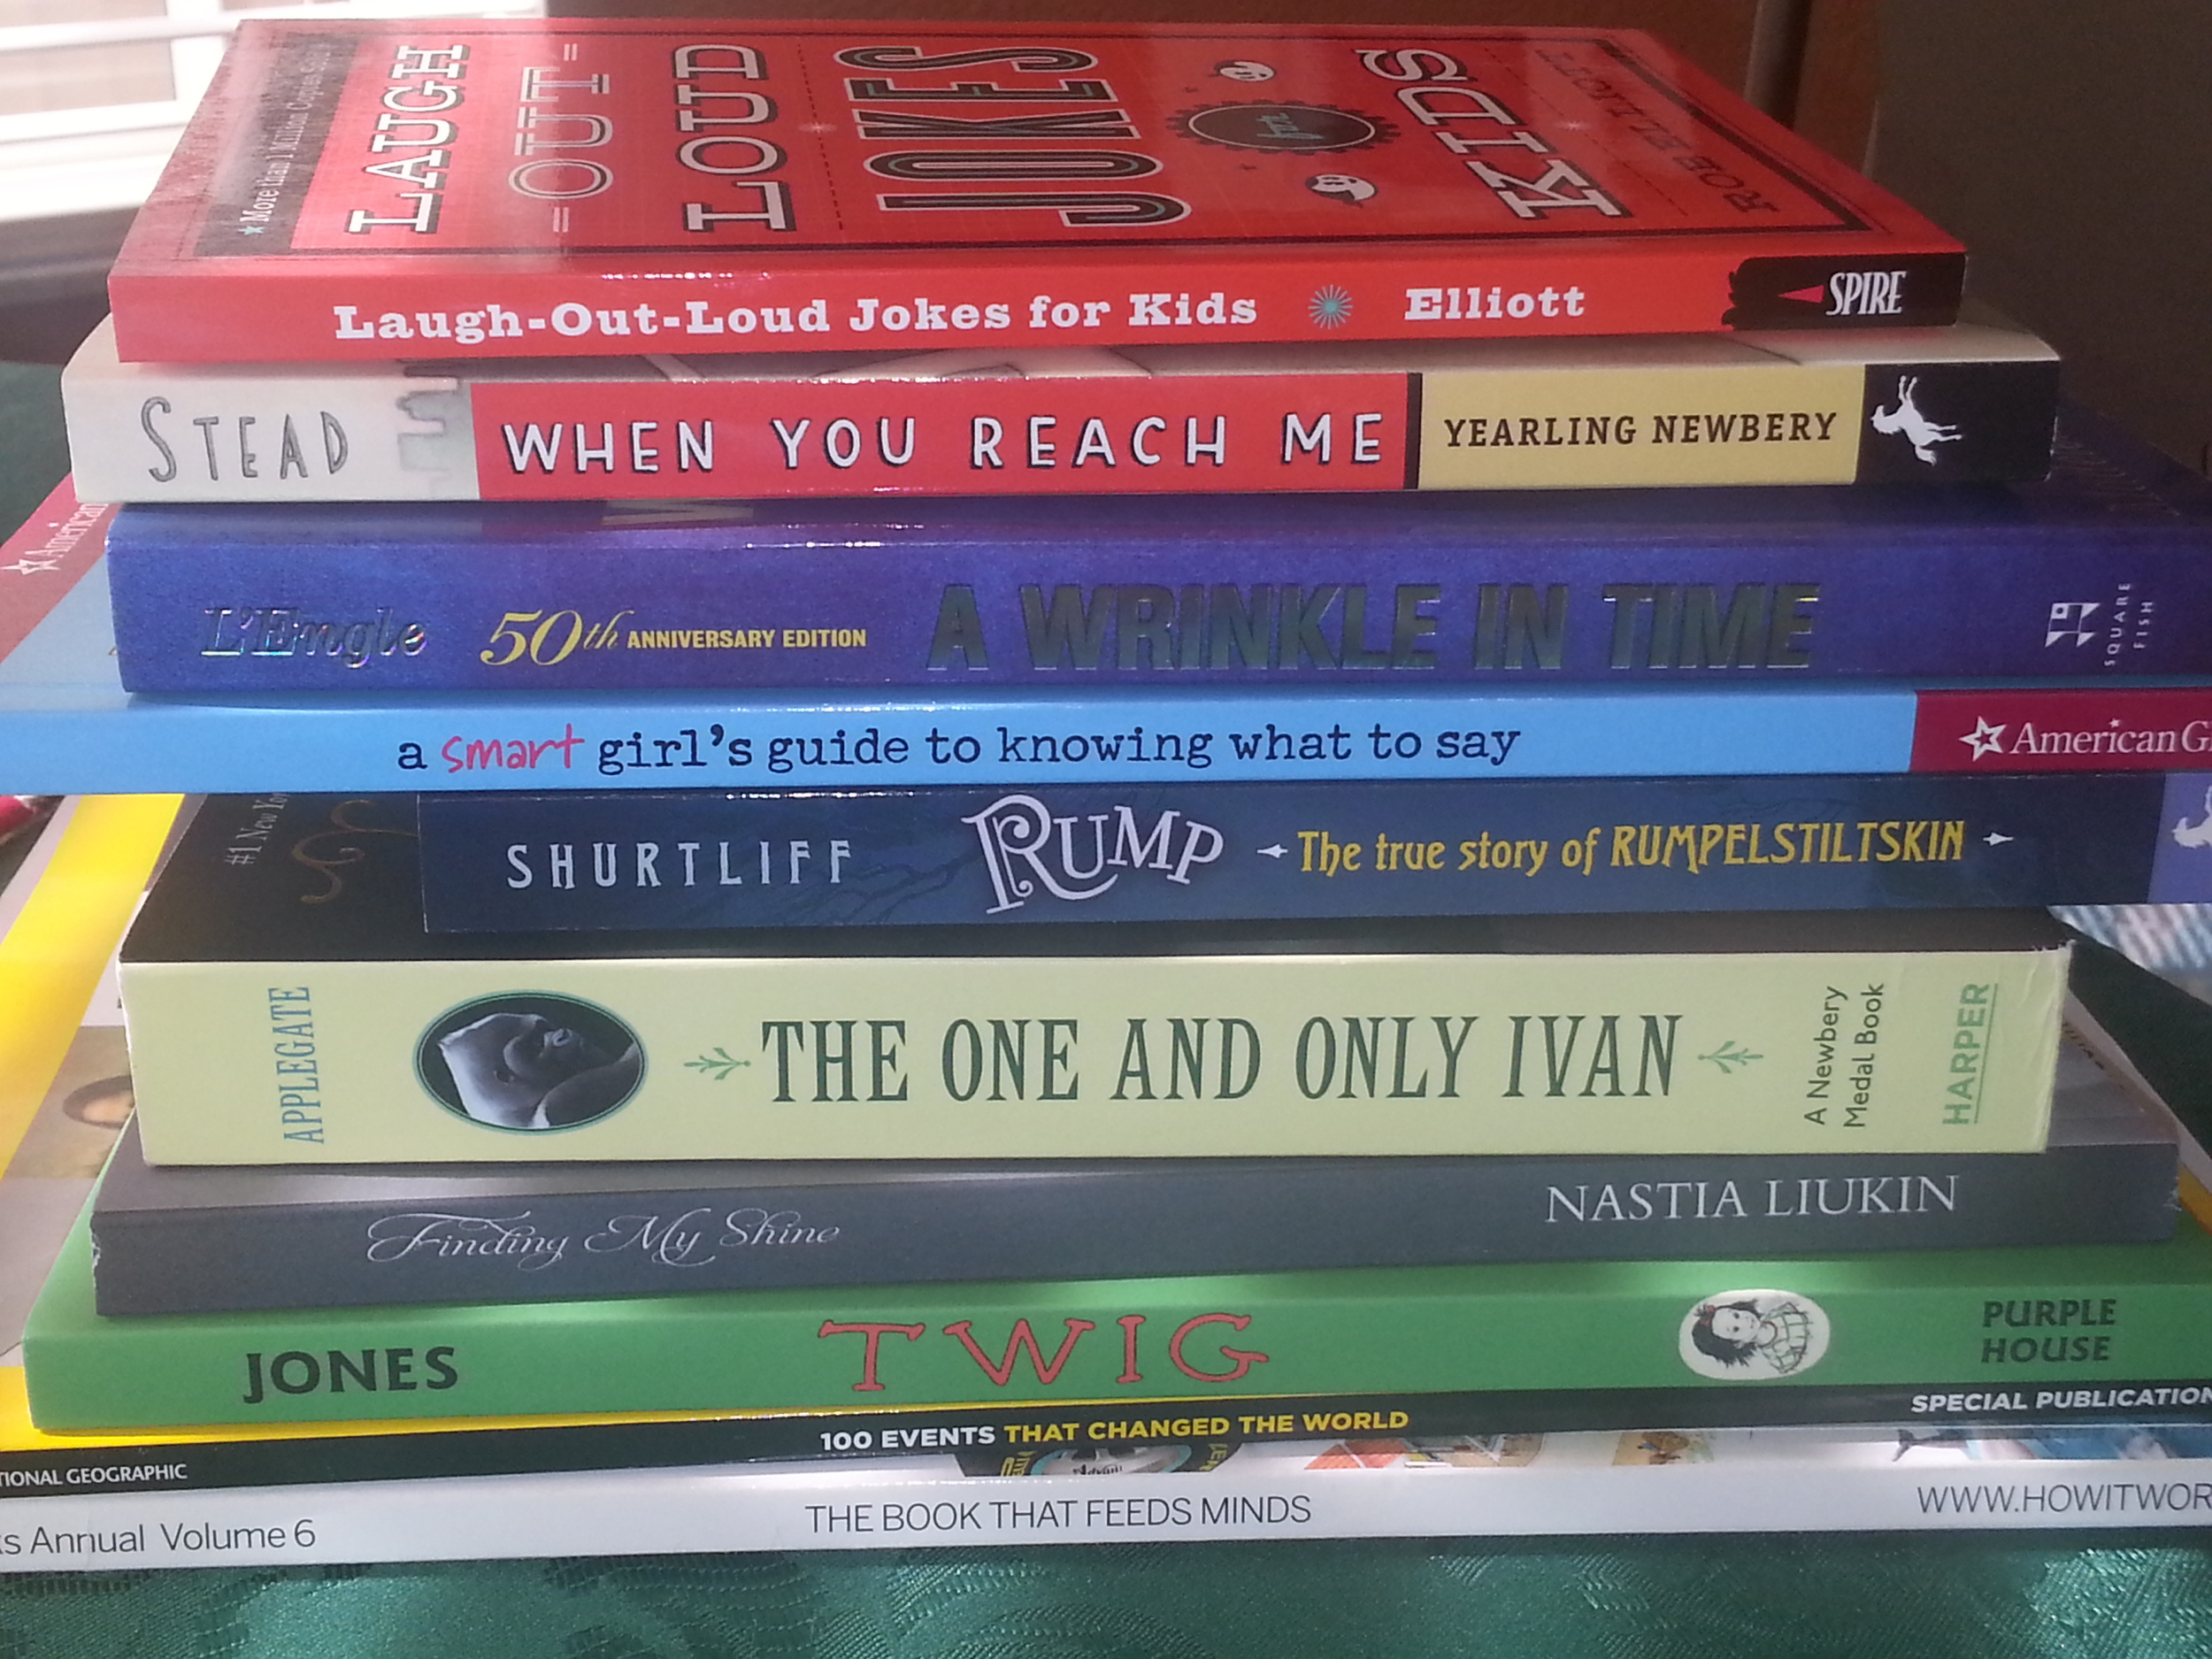 Christmas presents! Books are a wonderful gift!